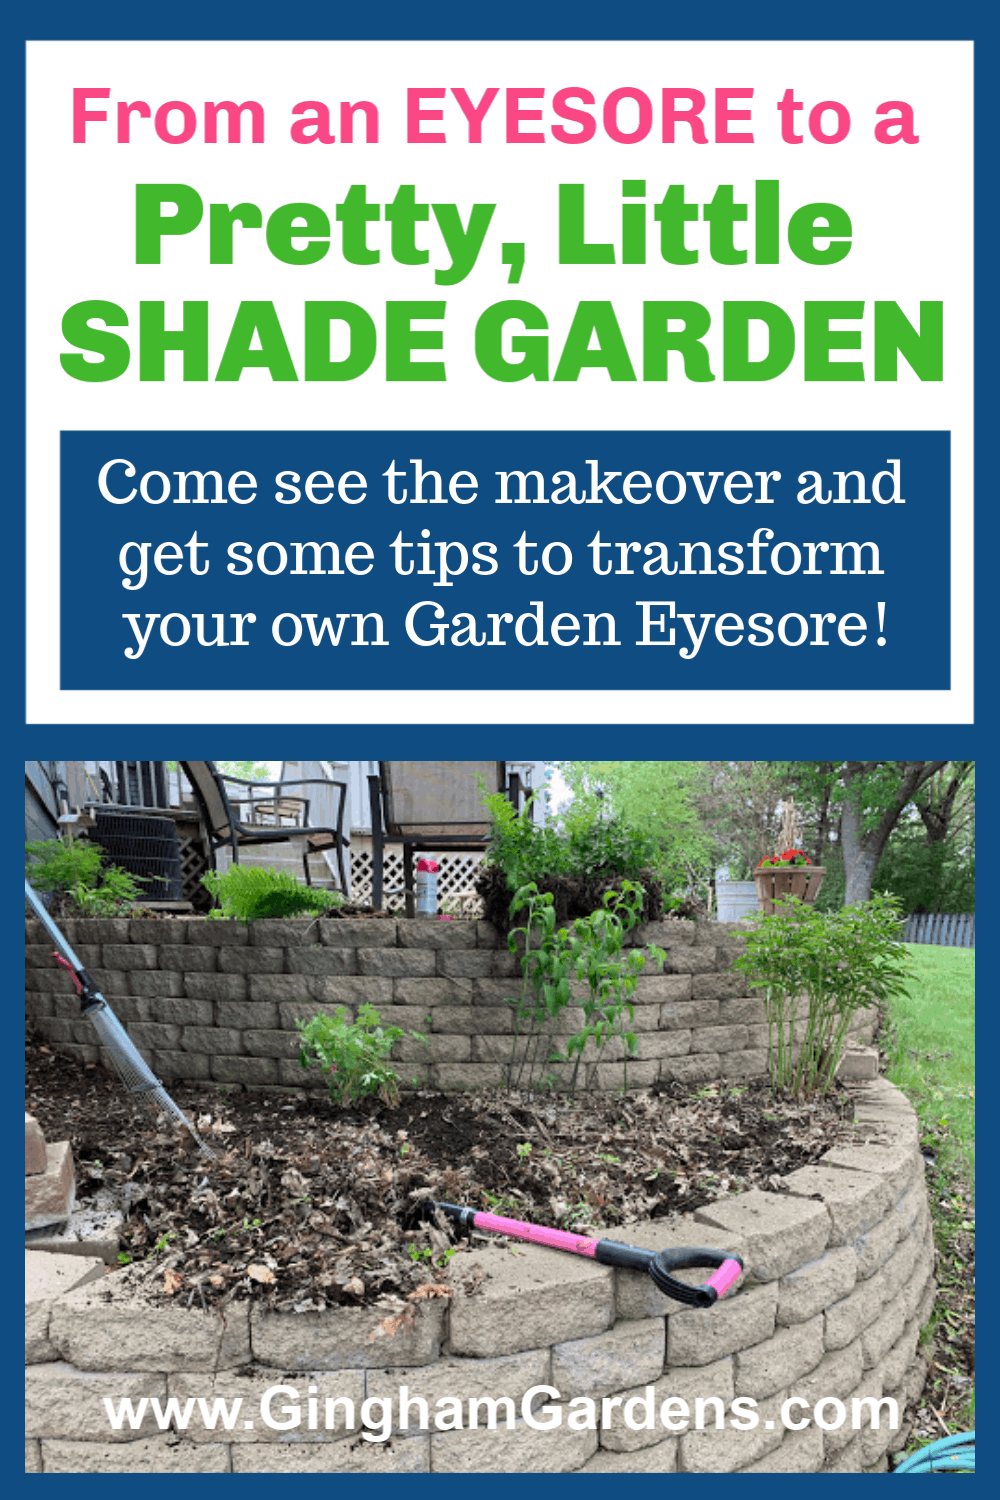 Image of Ugly Garden with Text Overlay Shade Garden Makeover